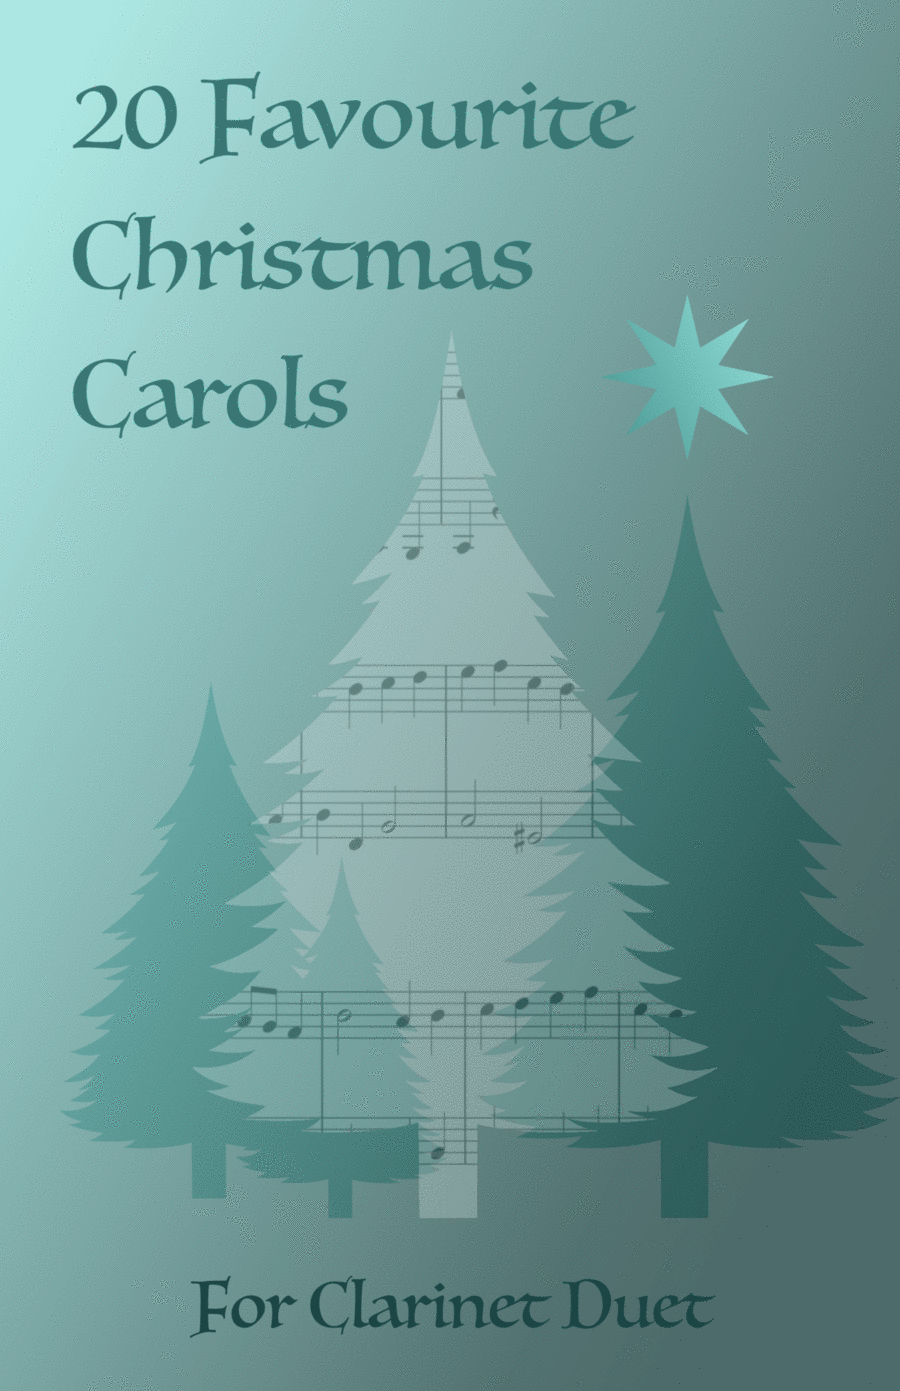 20 Favourite Christmas Carols for Clarinet Duet